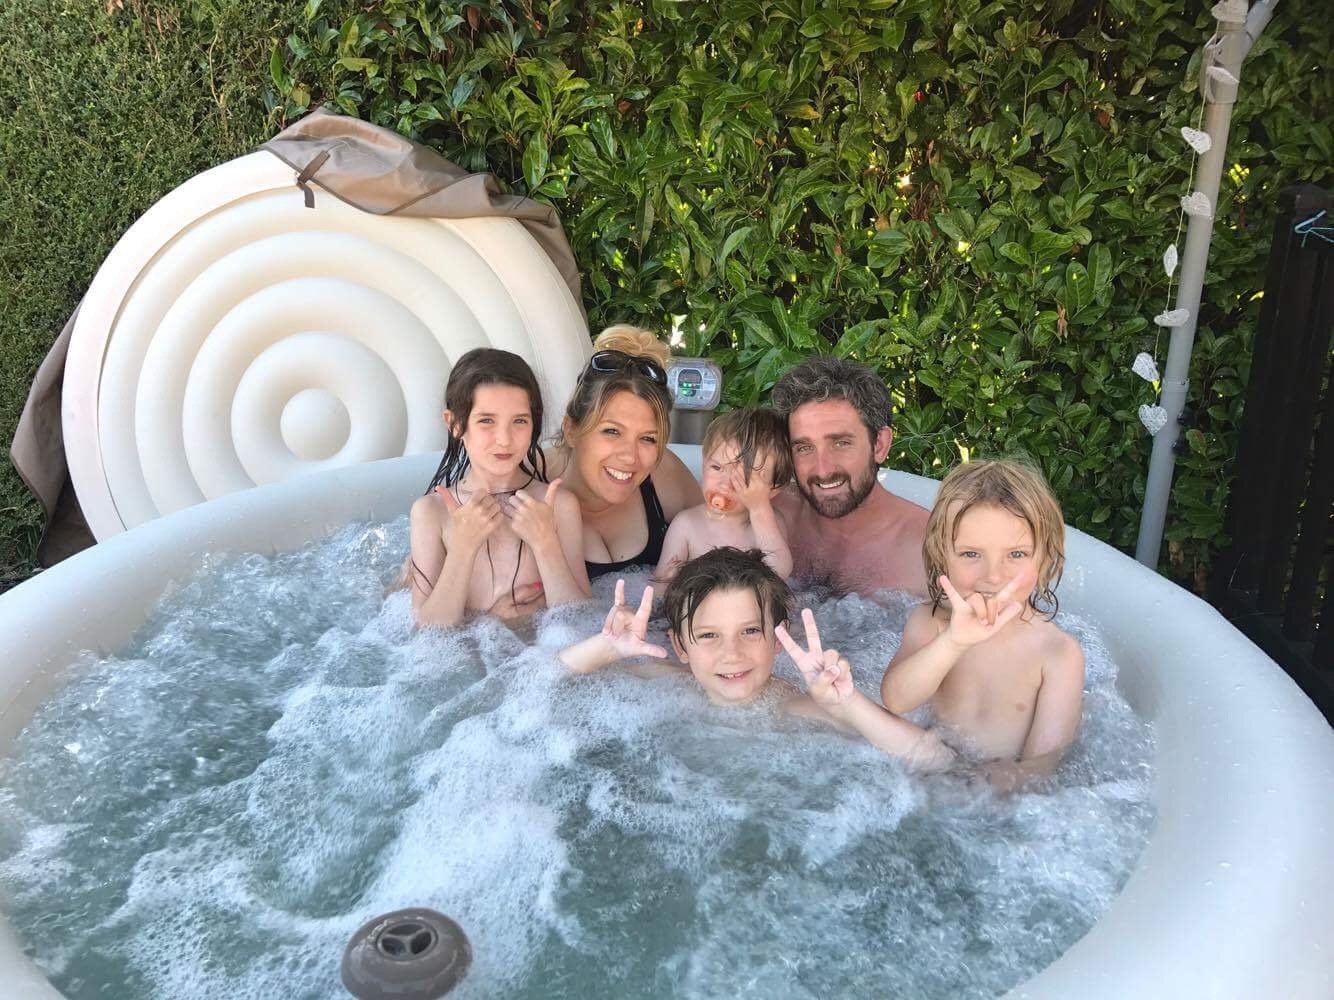 Intex inflatable hot tub spa with family